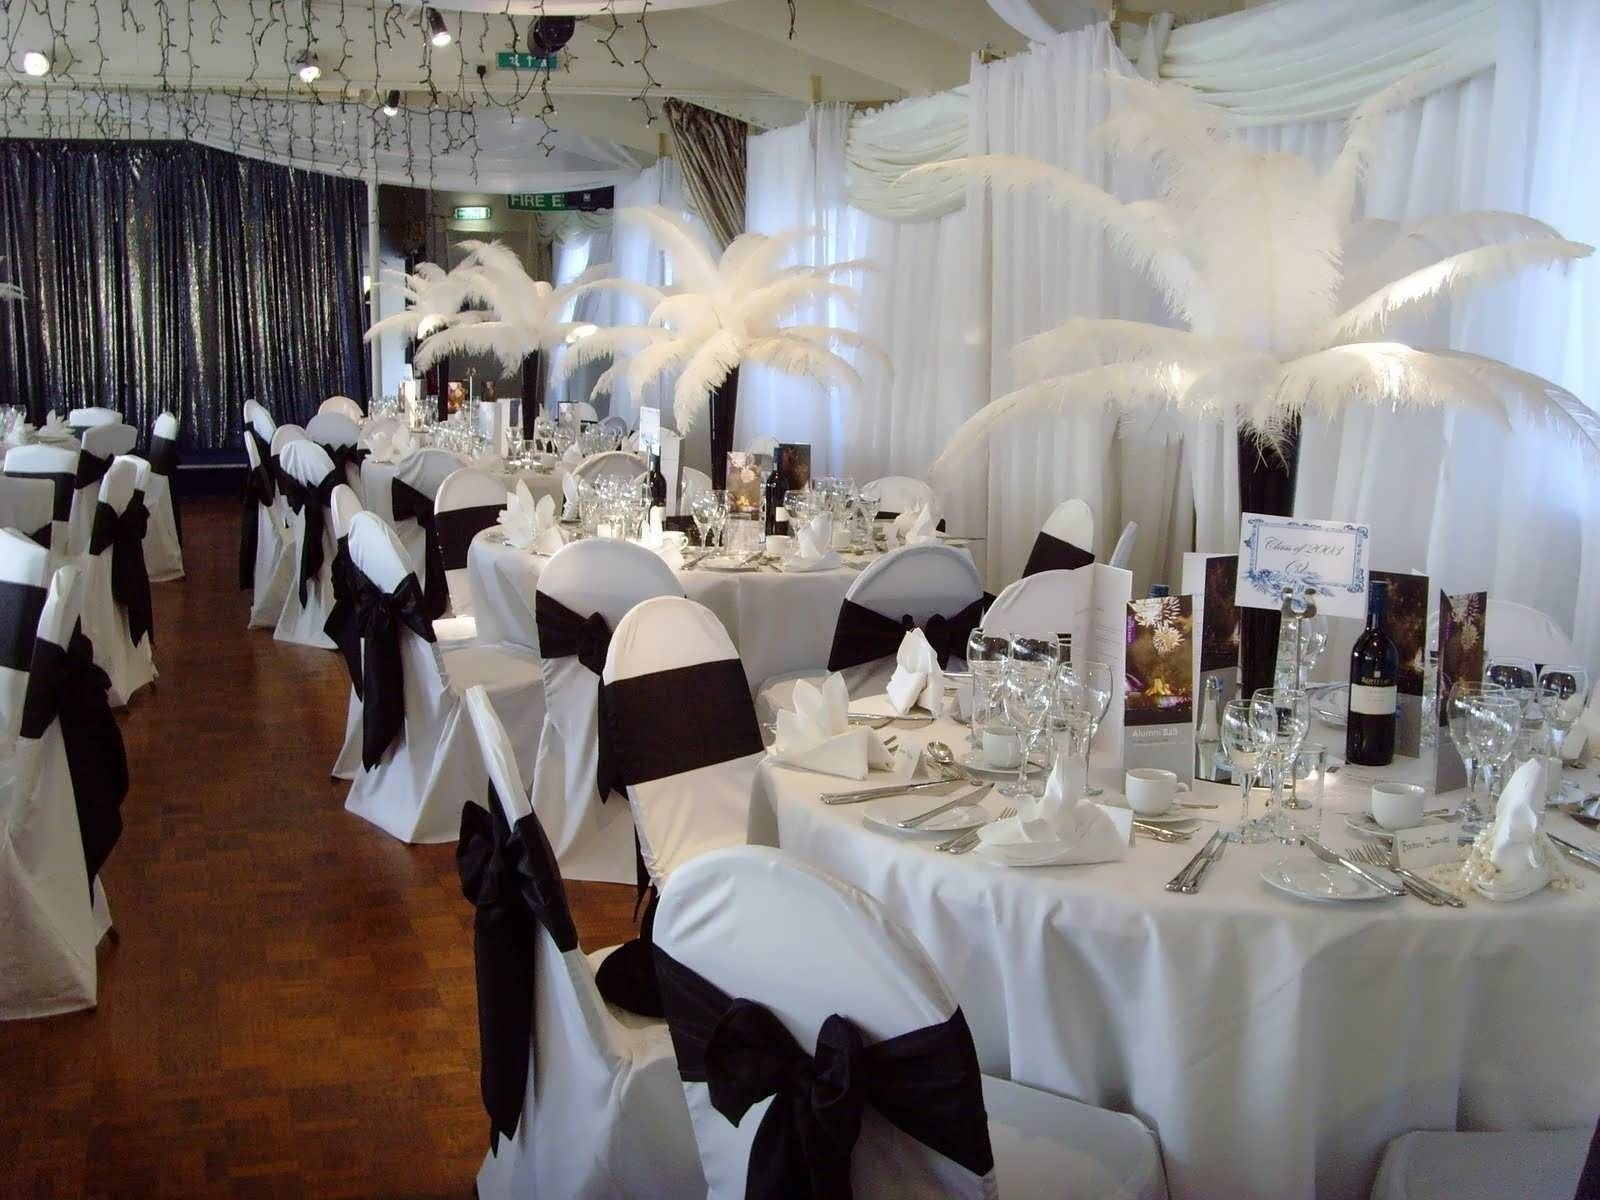 10 Unique Wedding Reception Ideas On A Budget wedding decorations ideas pictures included wedding decorations 2 2020